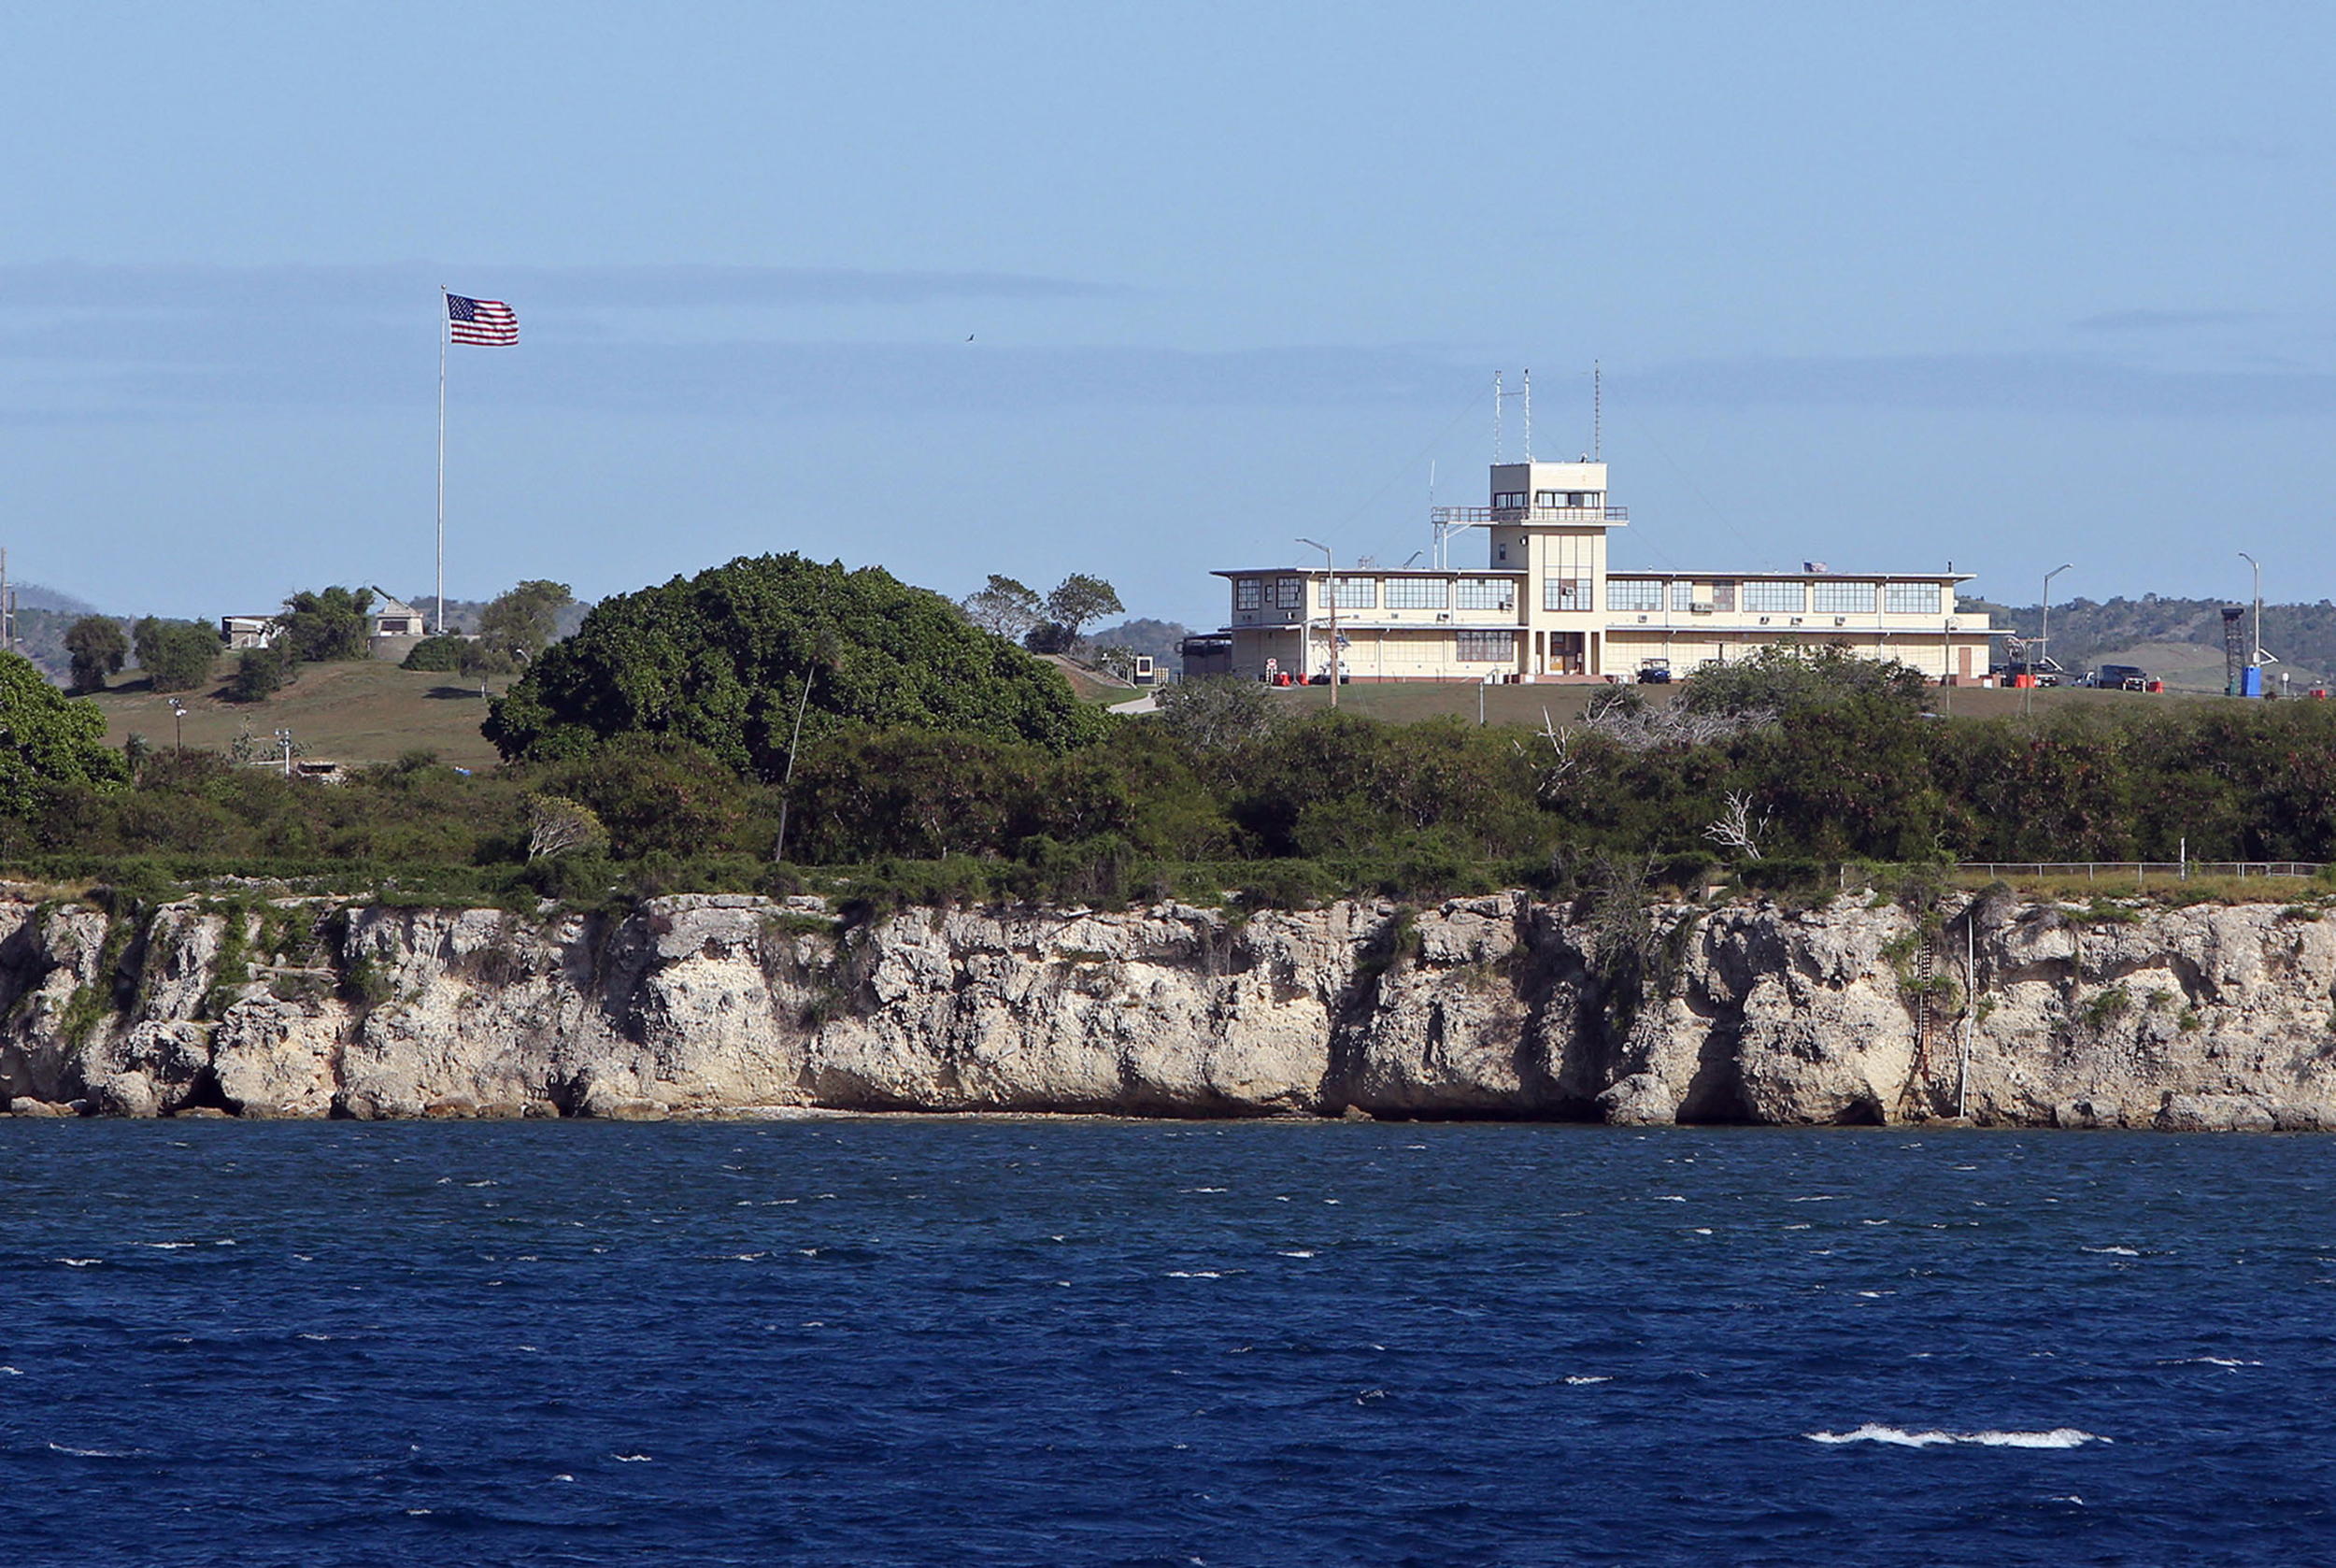 Image: Sept. 11 prosecutors propose 2019 trial date, can't get funs for second Guantanamo court